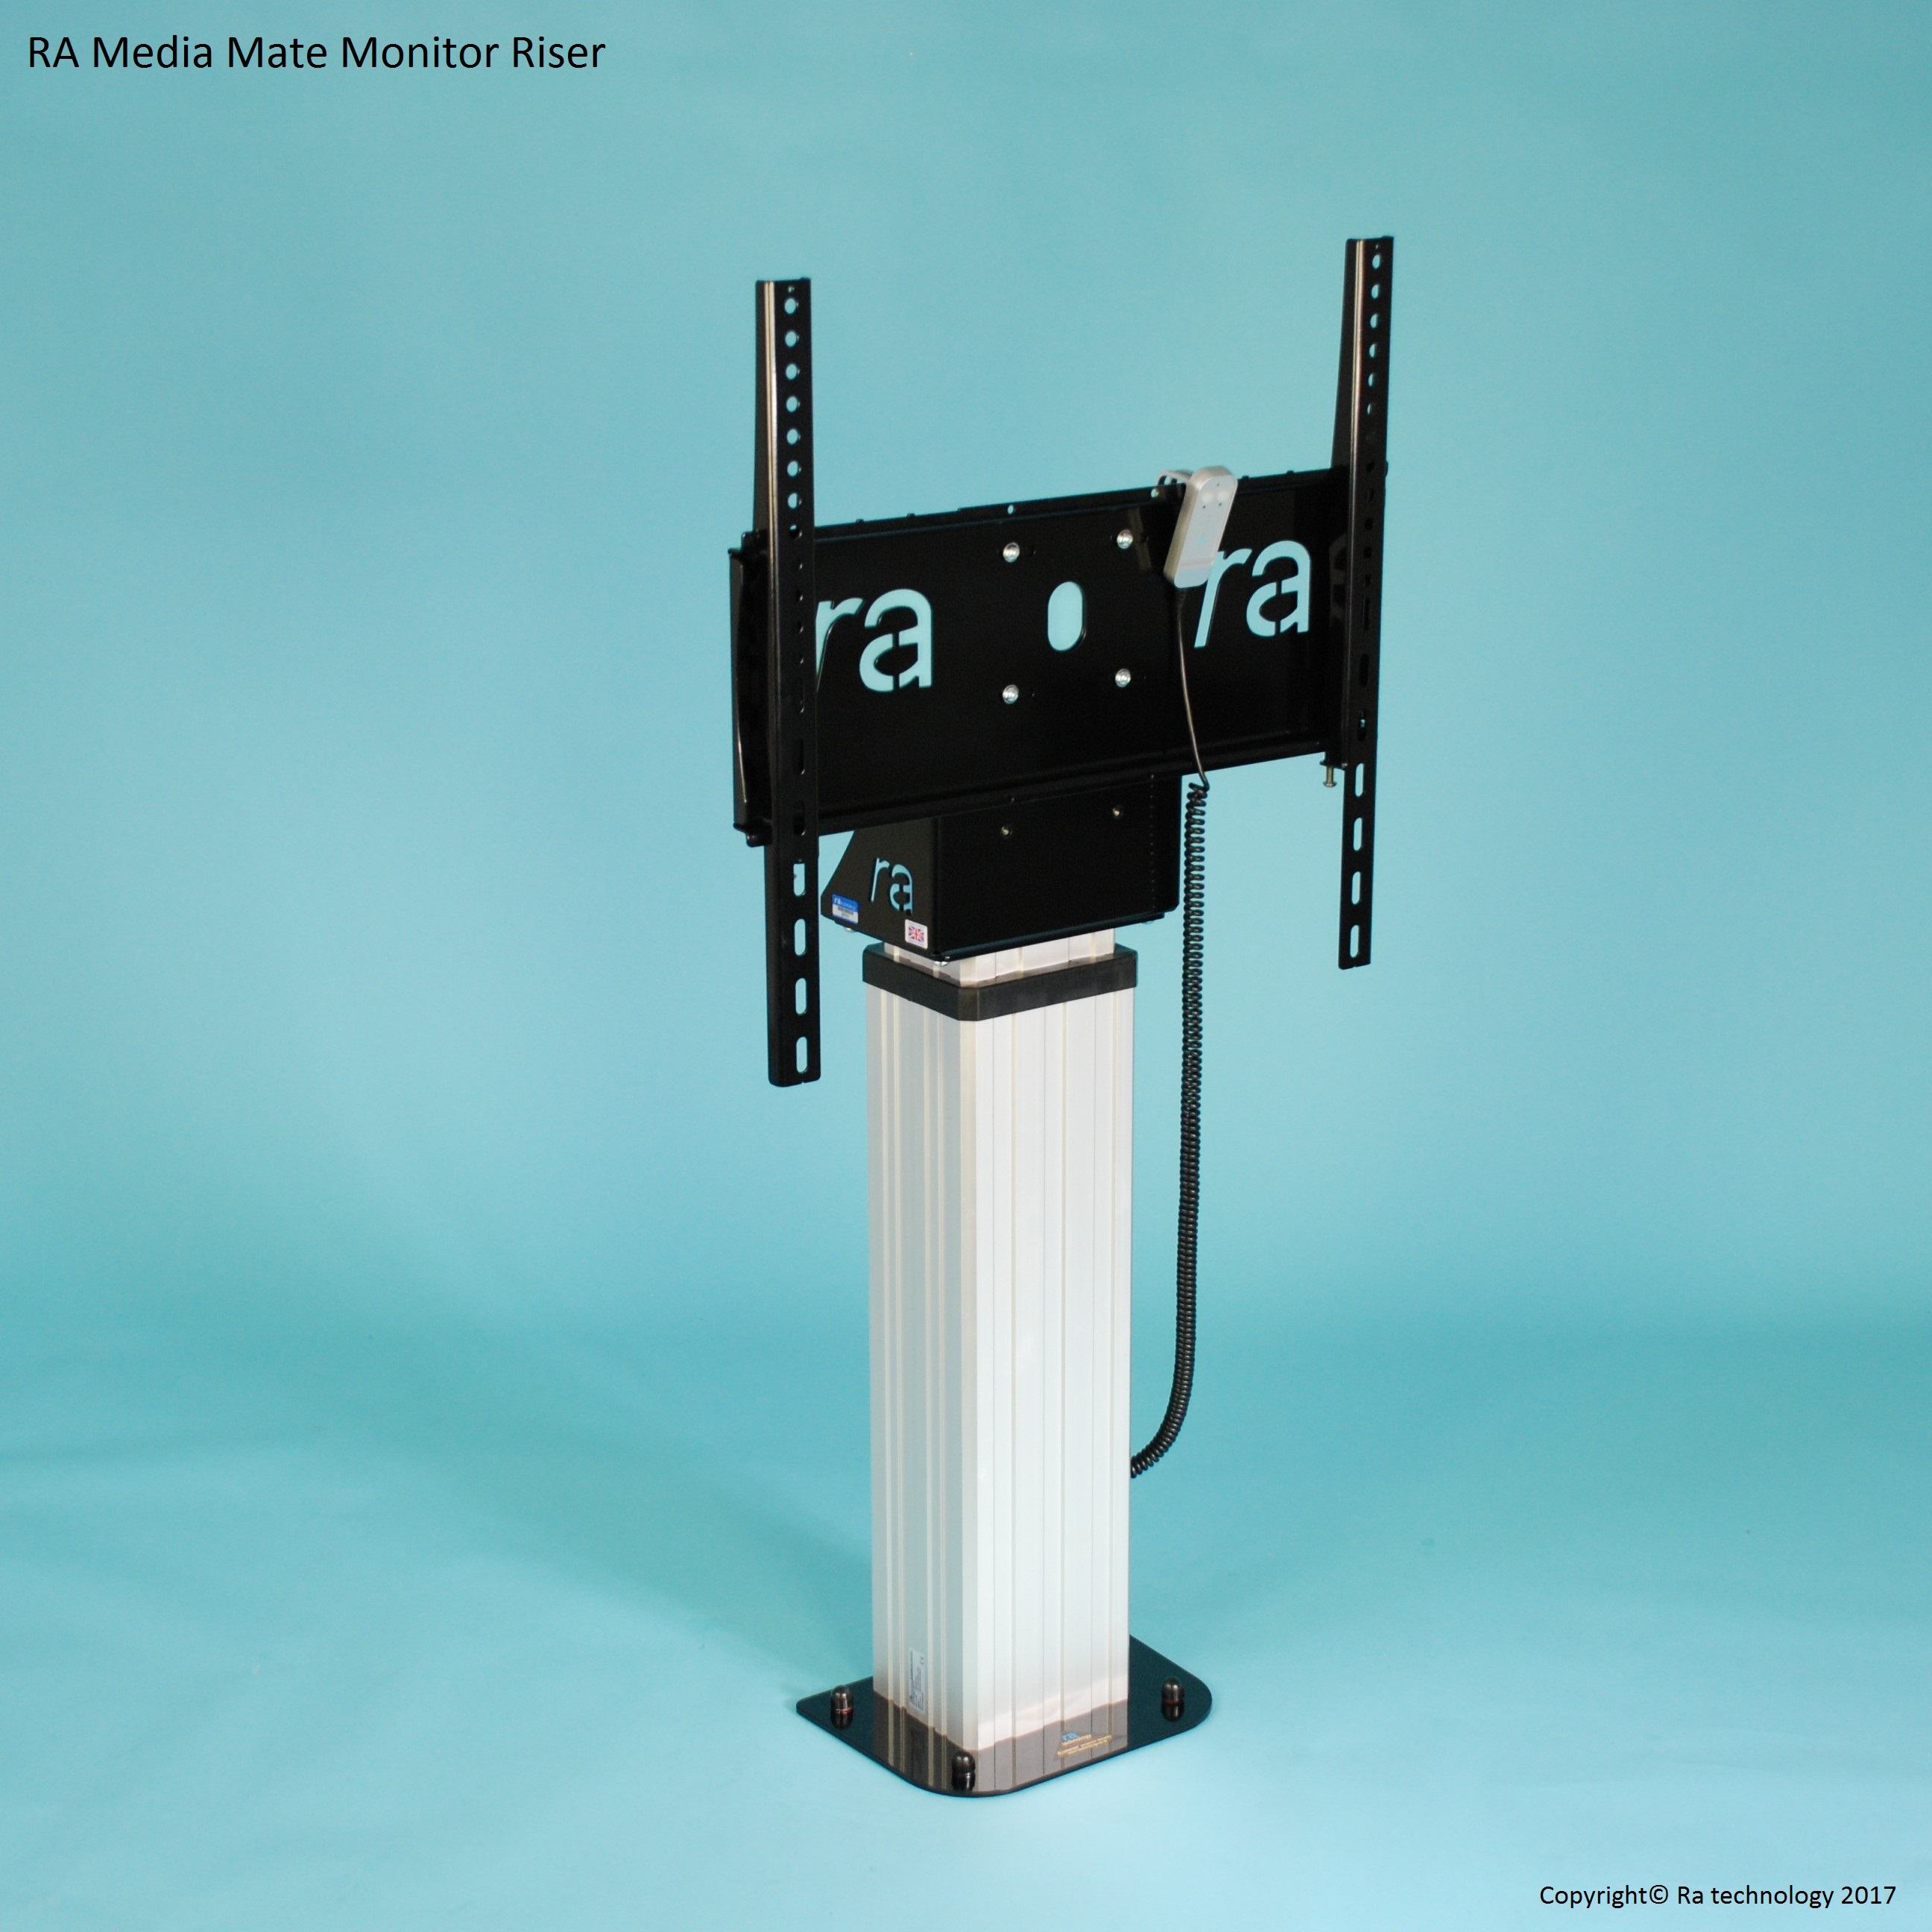 RA Media Mate Monitor Riser. NURSERY MODEL.